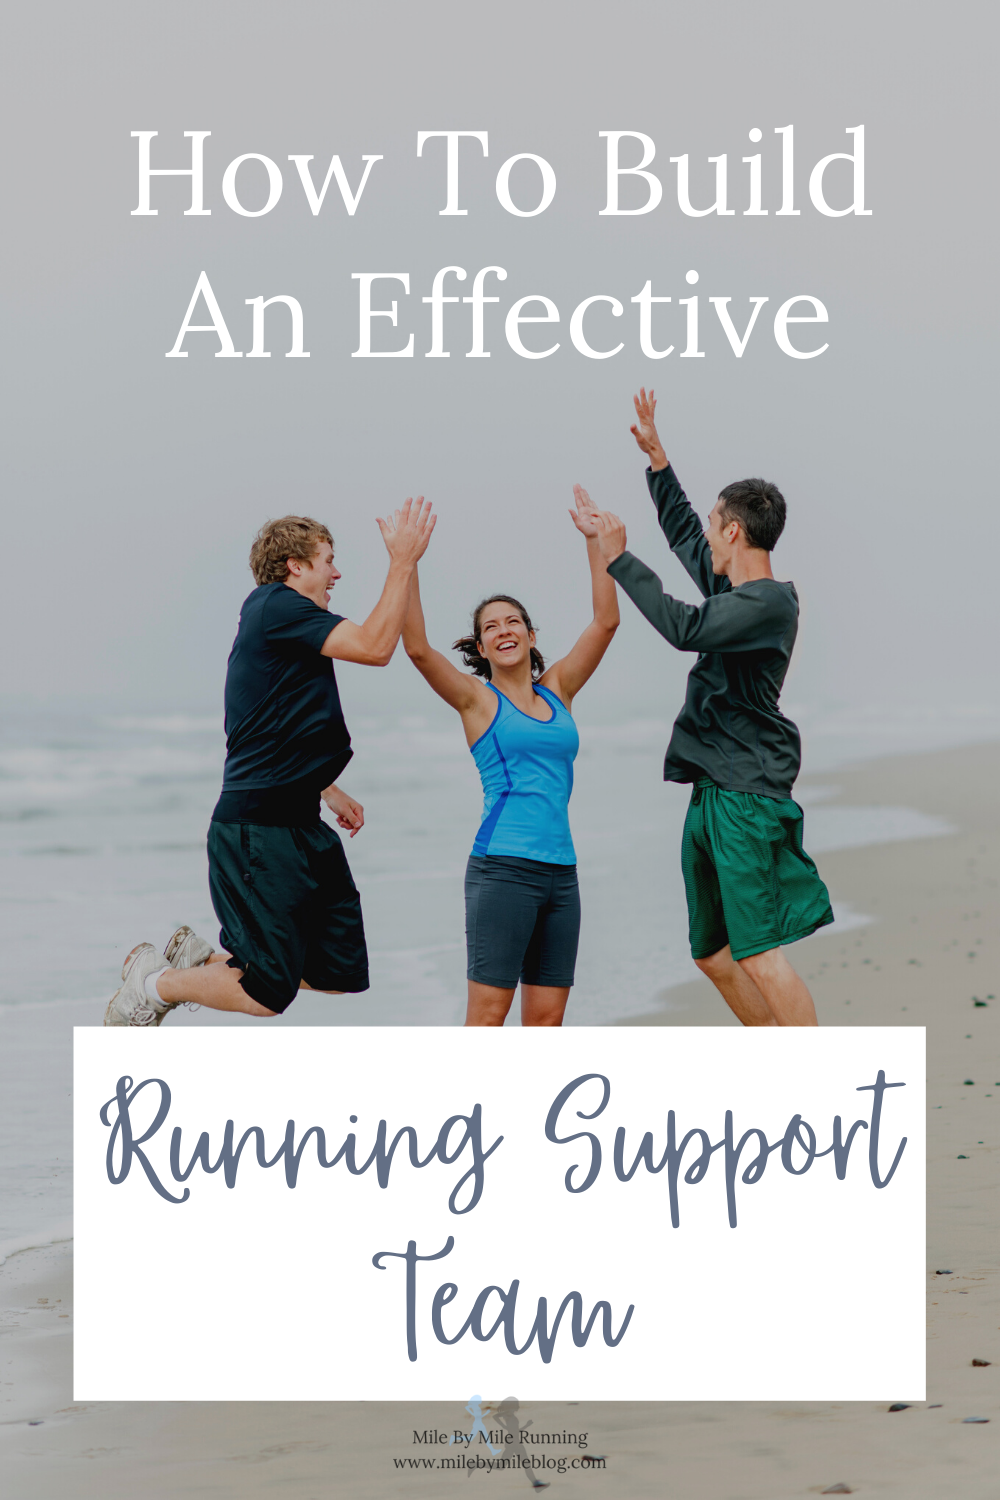 Do you have a running support team? You probably do, even if you don't realize it. Maybe you have a friend who you run with. Or a really good physical therapist. People who can support your running, while providing you with motivation and confidence, can all be a part of your support team. Here are some ideas for building an effective running support team.